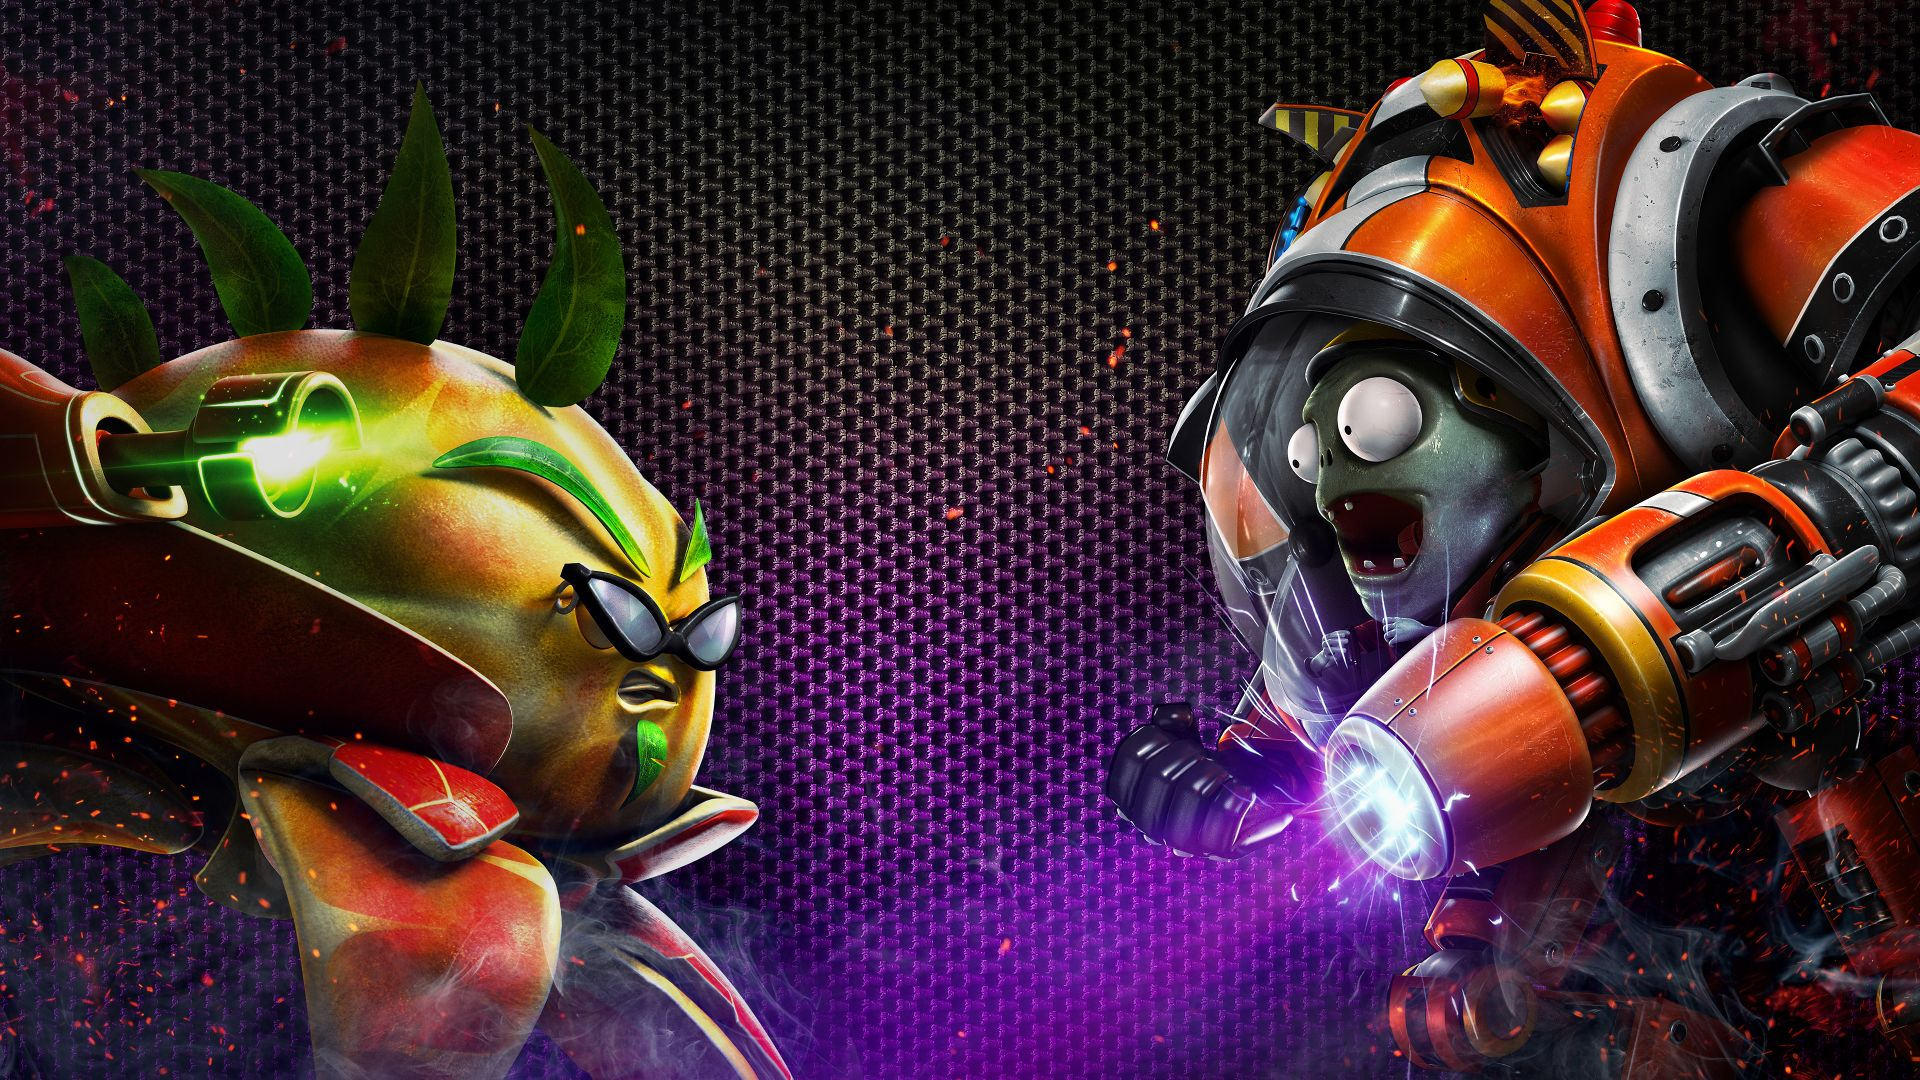 Plants Vs Zombies Garden Warfare 2 Deluxe Edition For